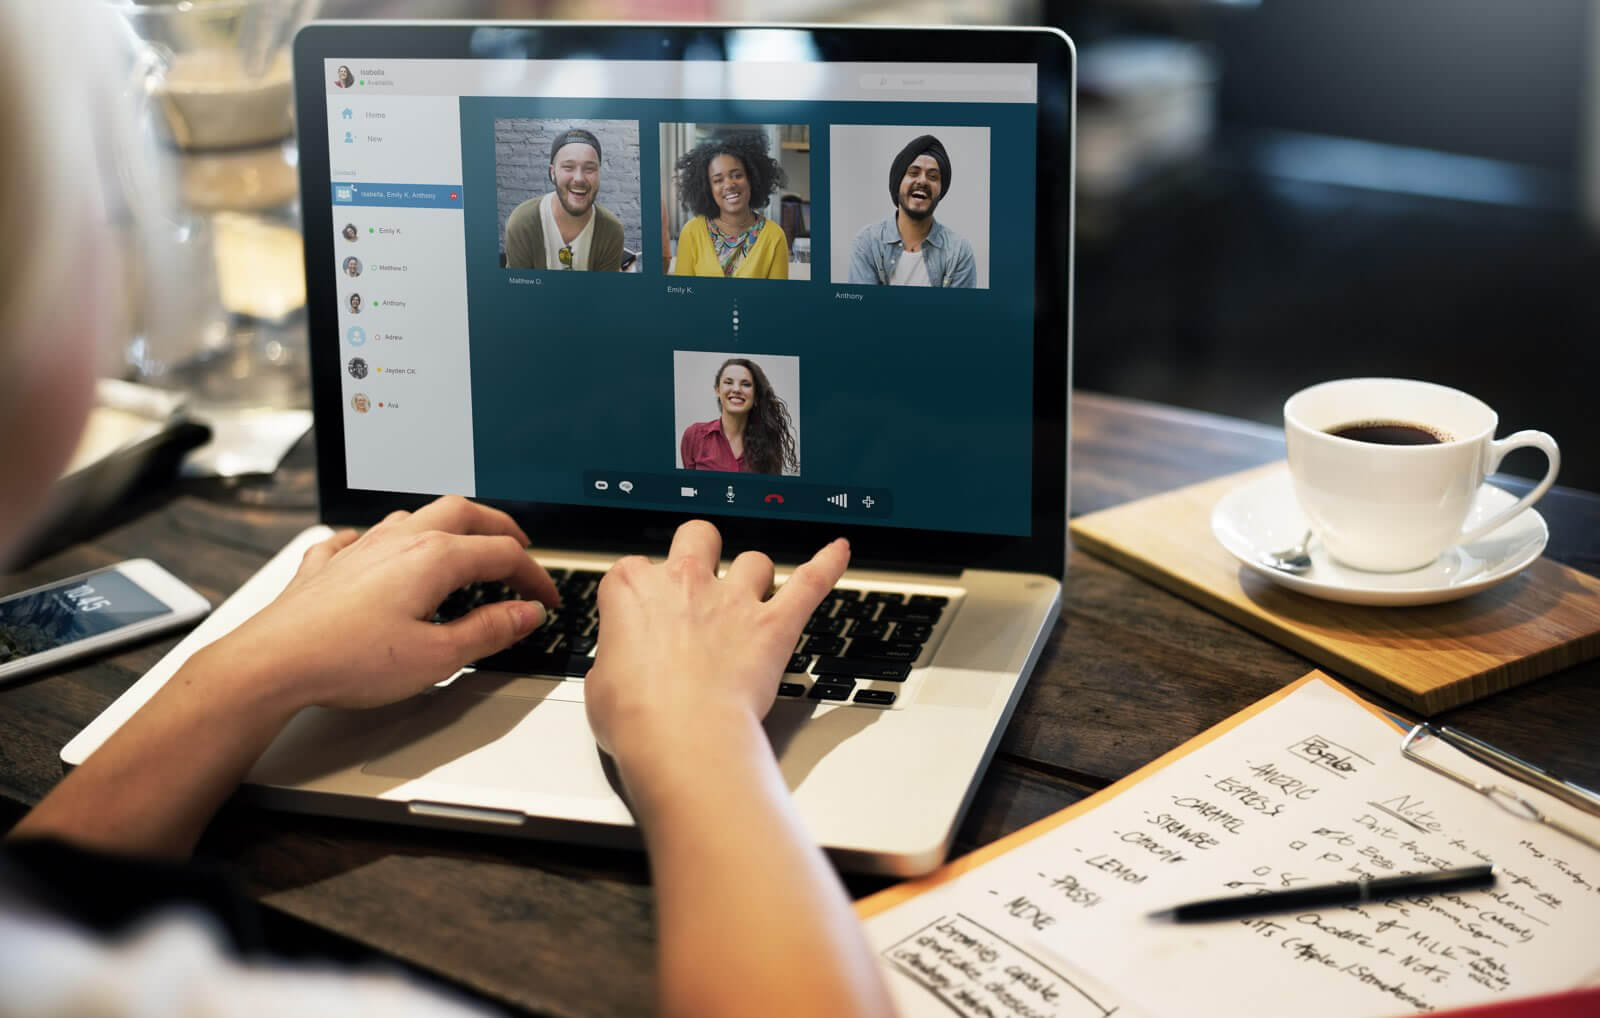 10 tips to set up your home office for video conferencing